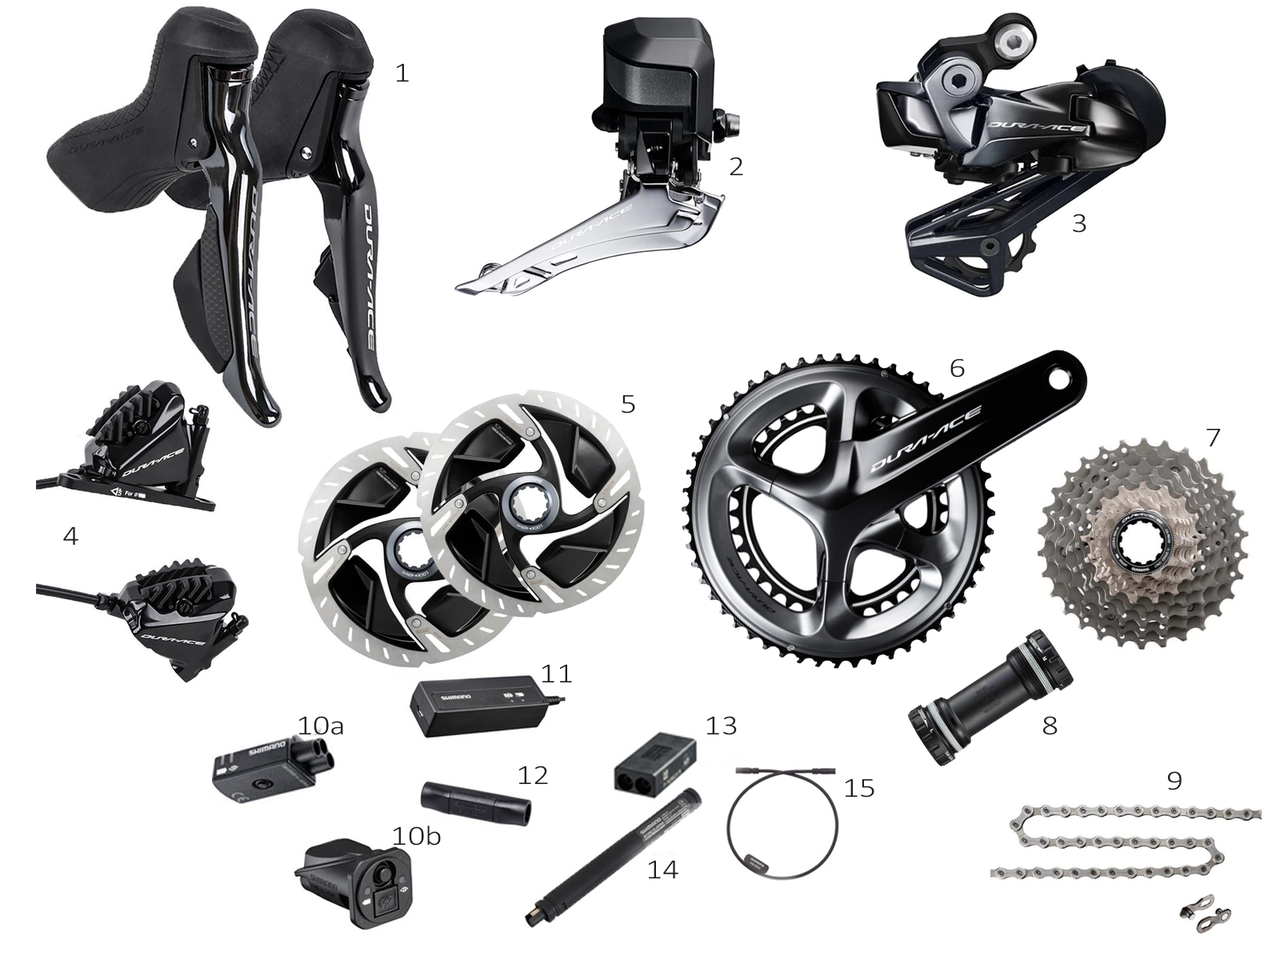 f3233e1ec11 Shimano Dura-Ace R9170 Di2 Hydro Disc Groupset - Glory Cycles